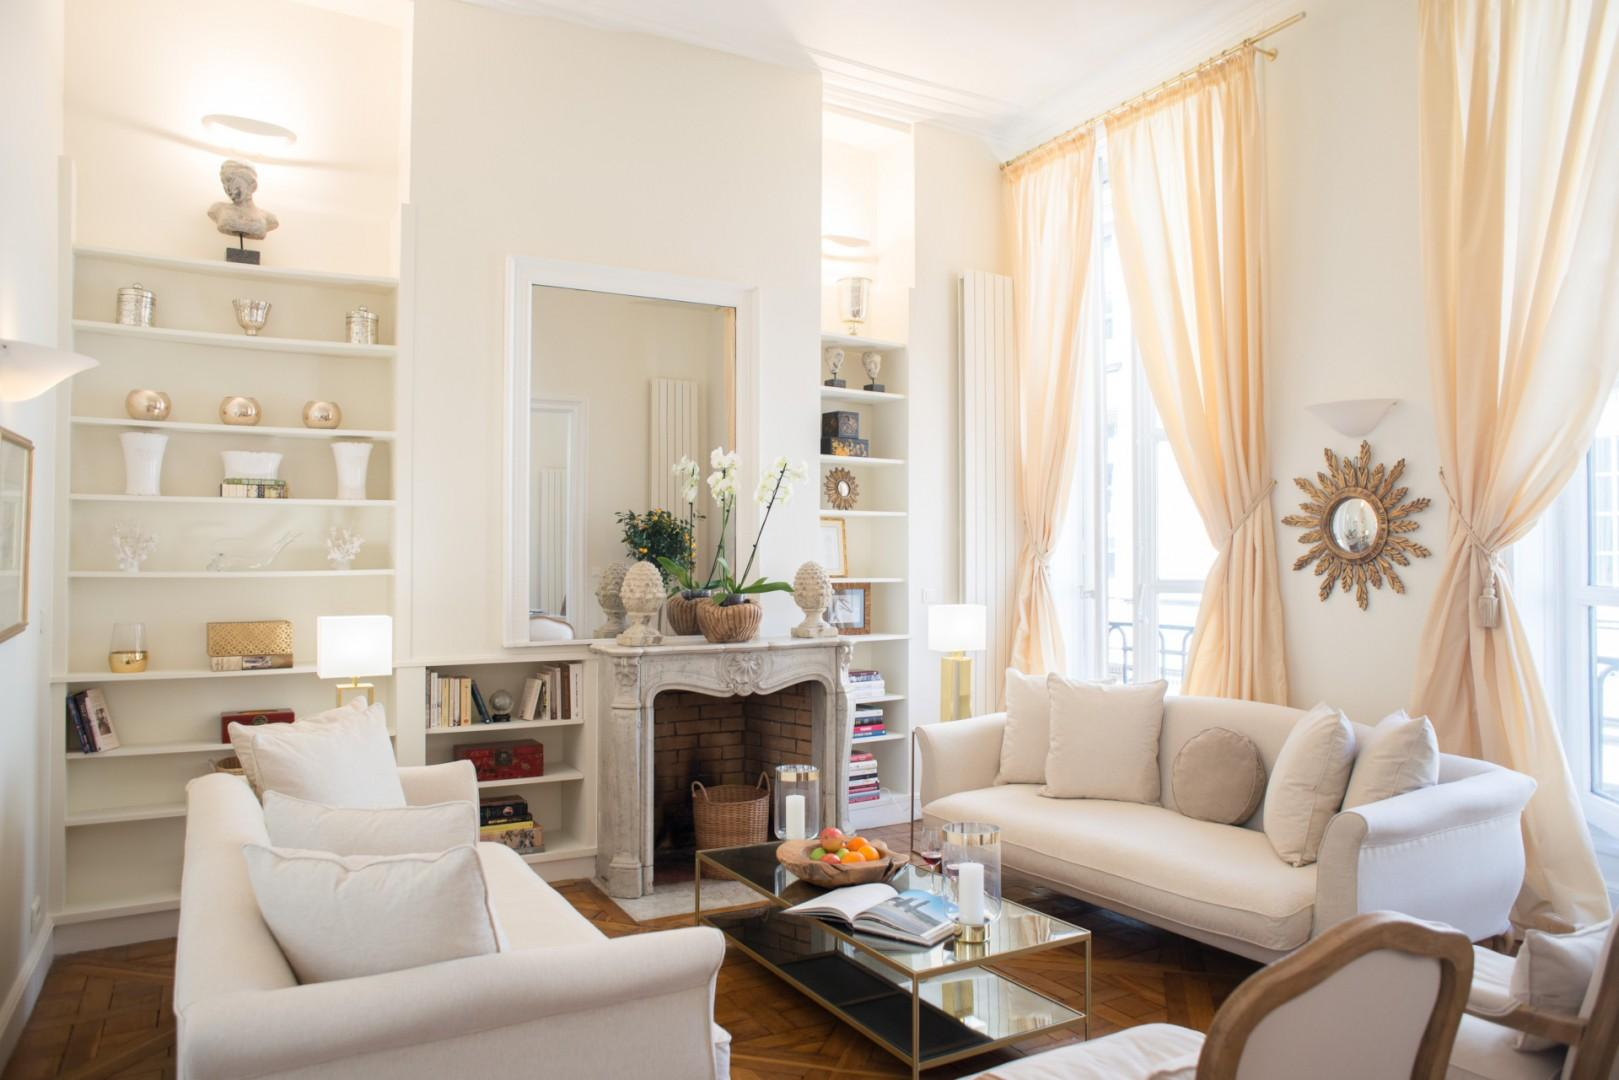 Welcome to the elegant and comfortable Clos Jolie apartment!